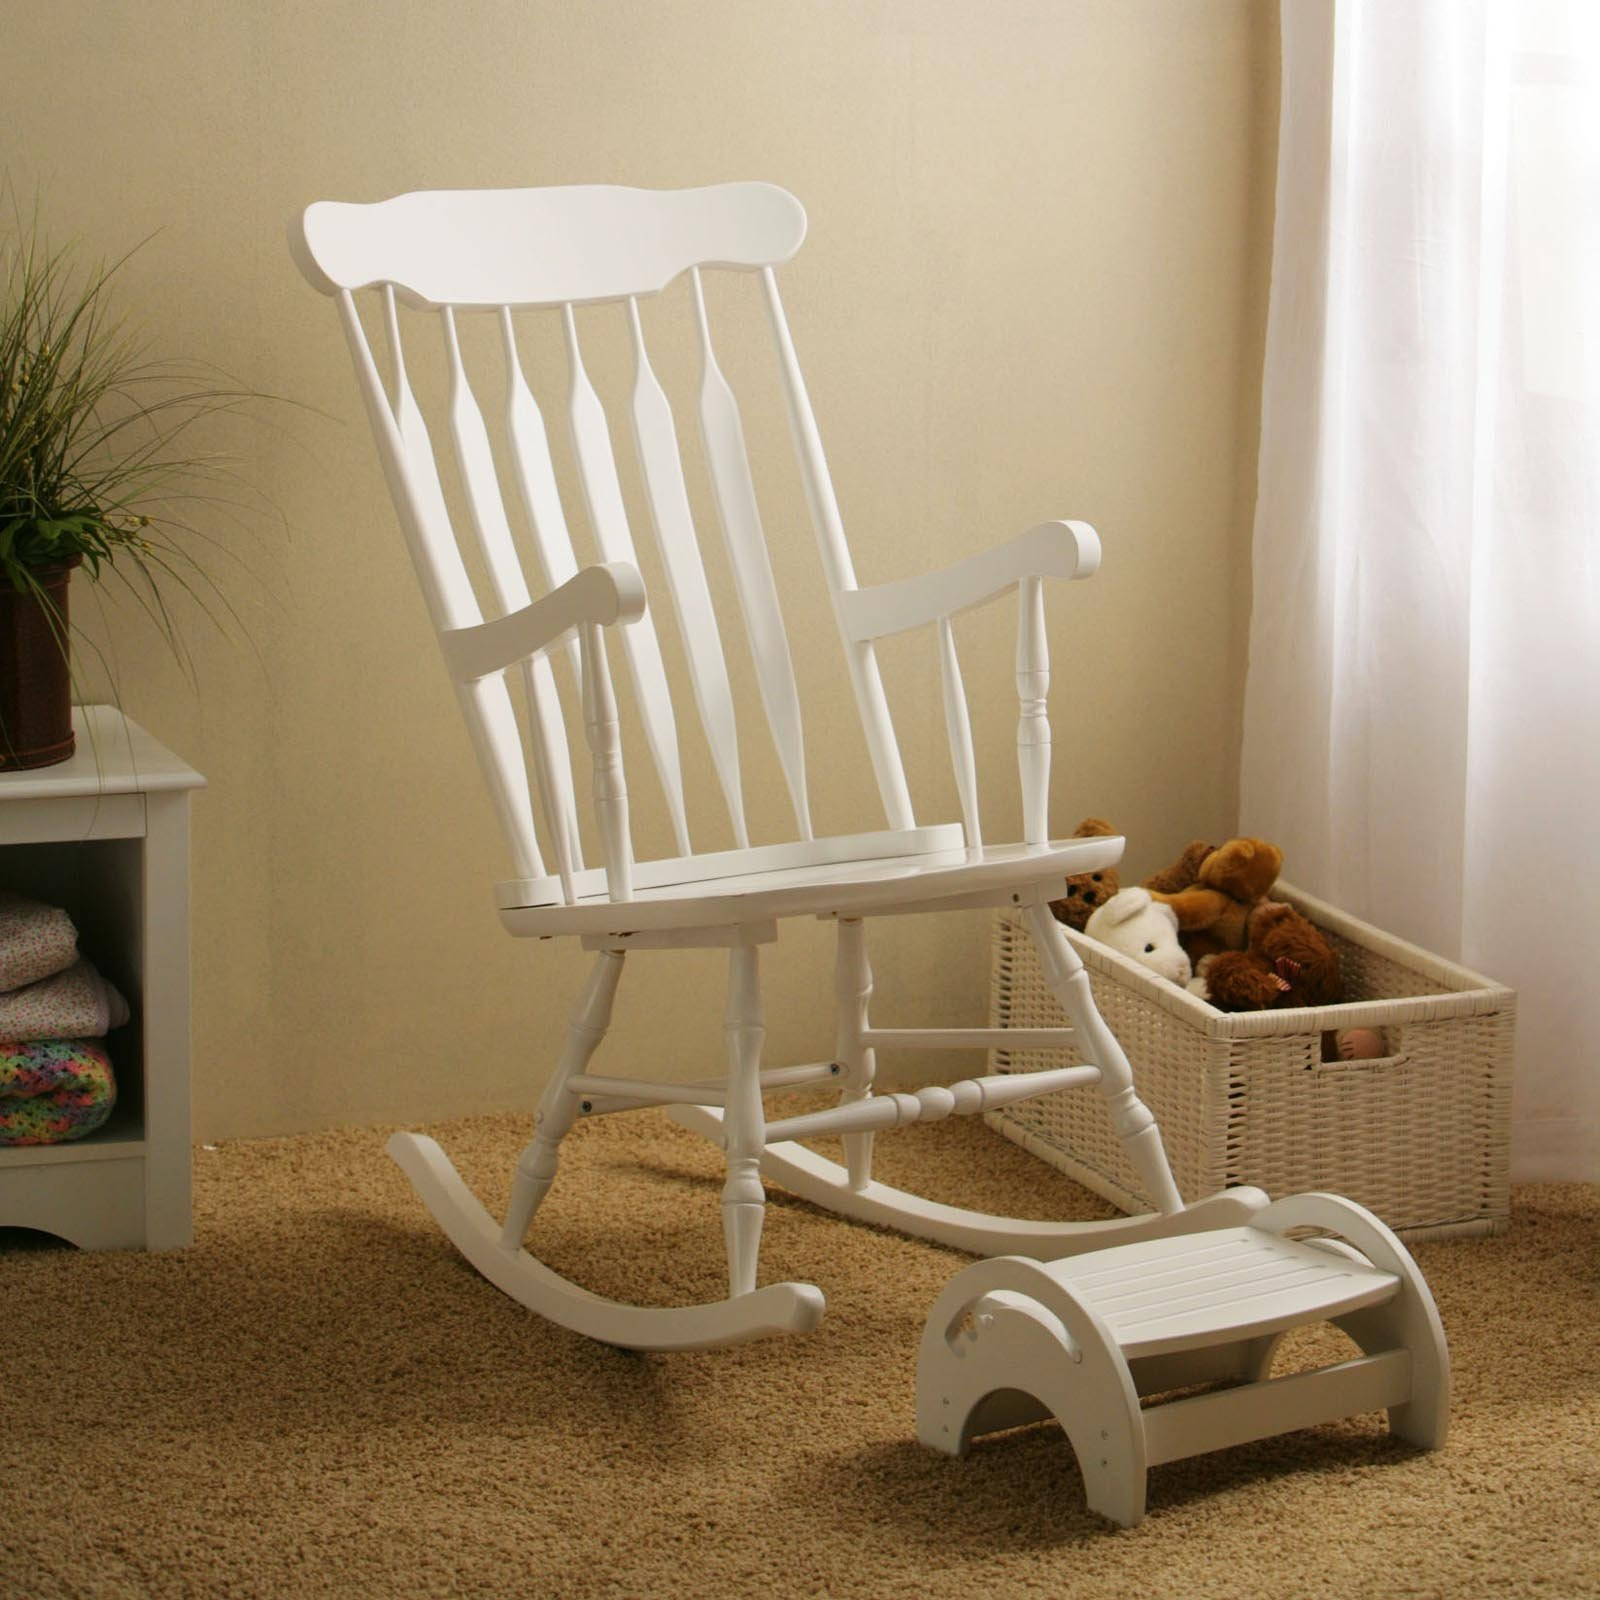 Picture of: Glider Rockers for Nursery in the Bed design